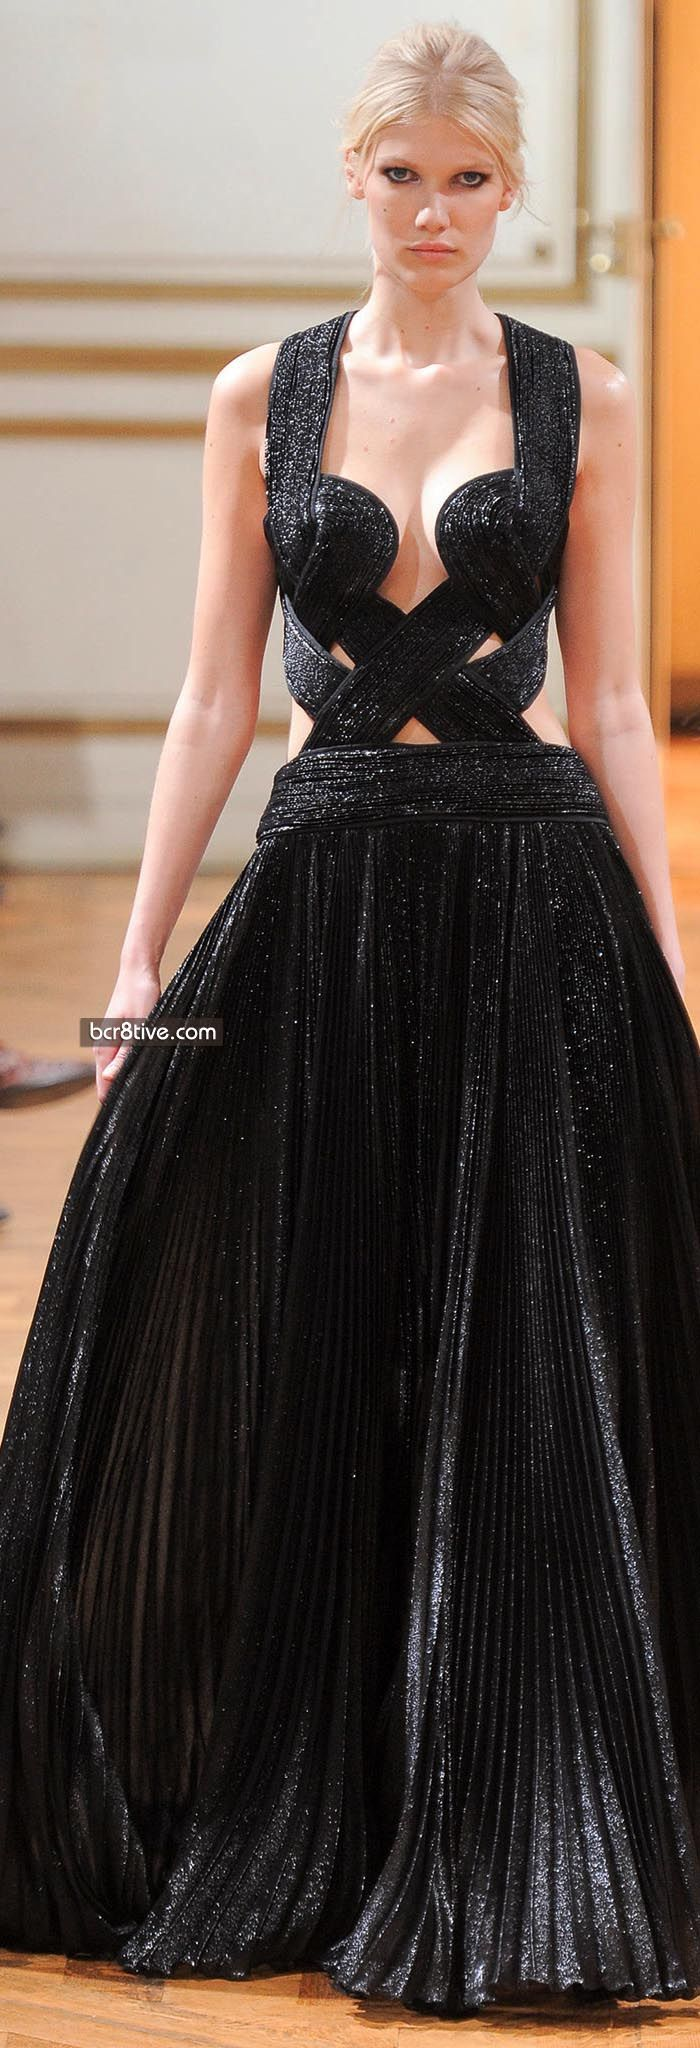 Zuhair Murad  2013-14 Haute Couture Collection Repinned by www.fashion.net